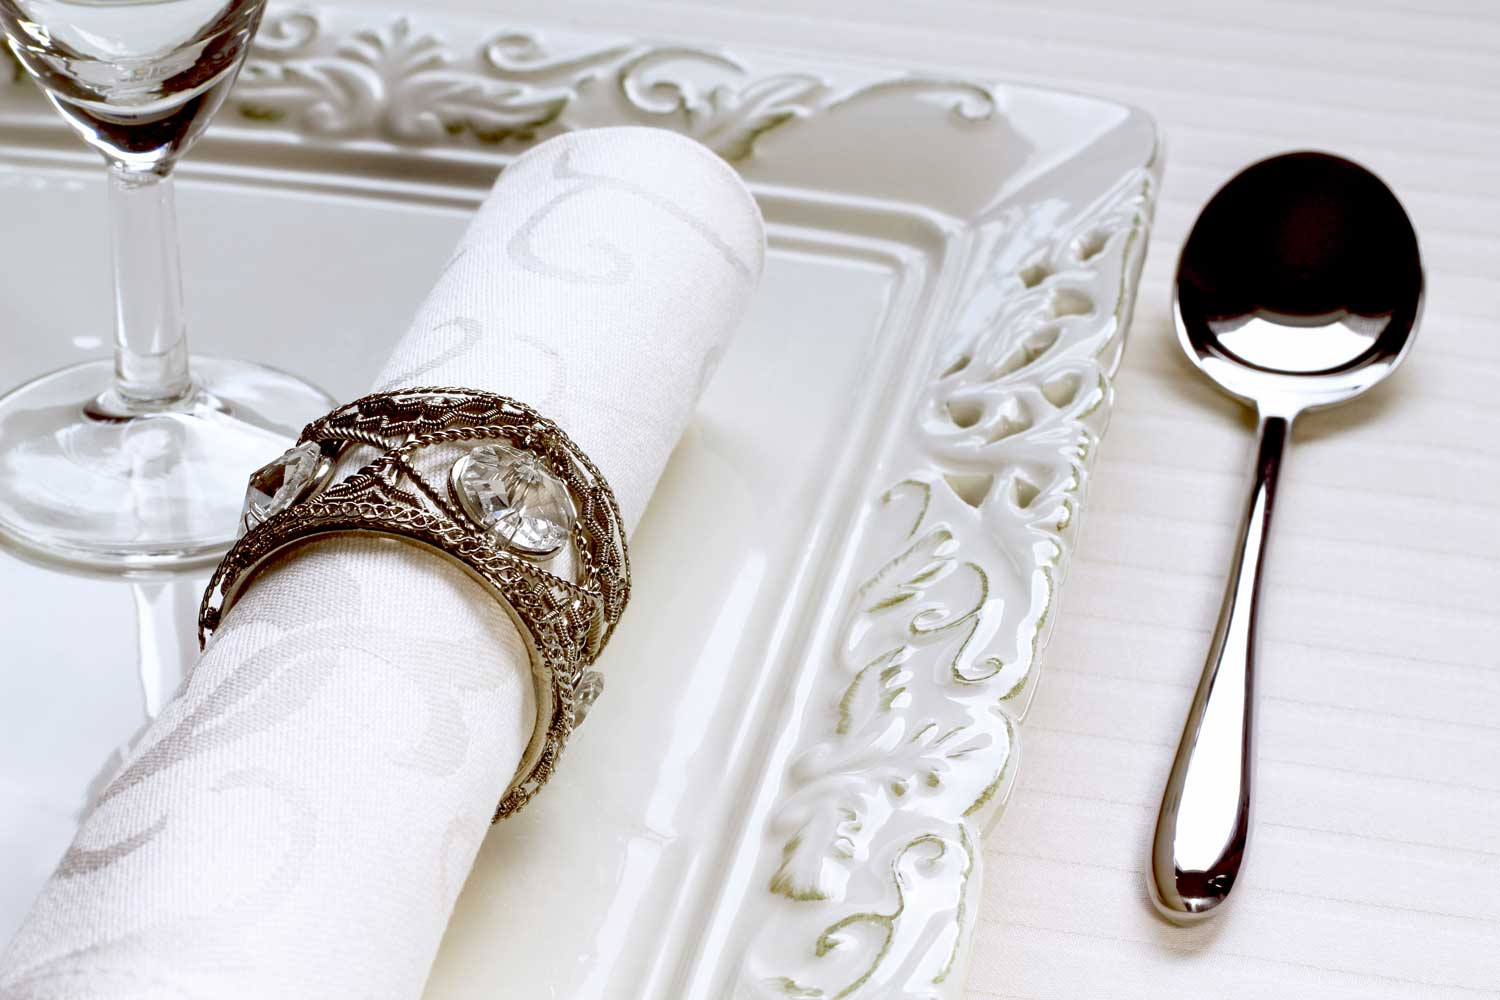 housekeeper/cook cutlery and napkins